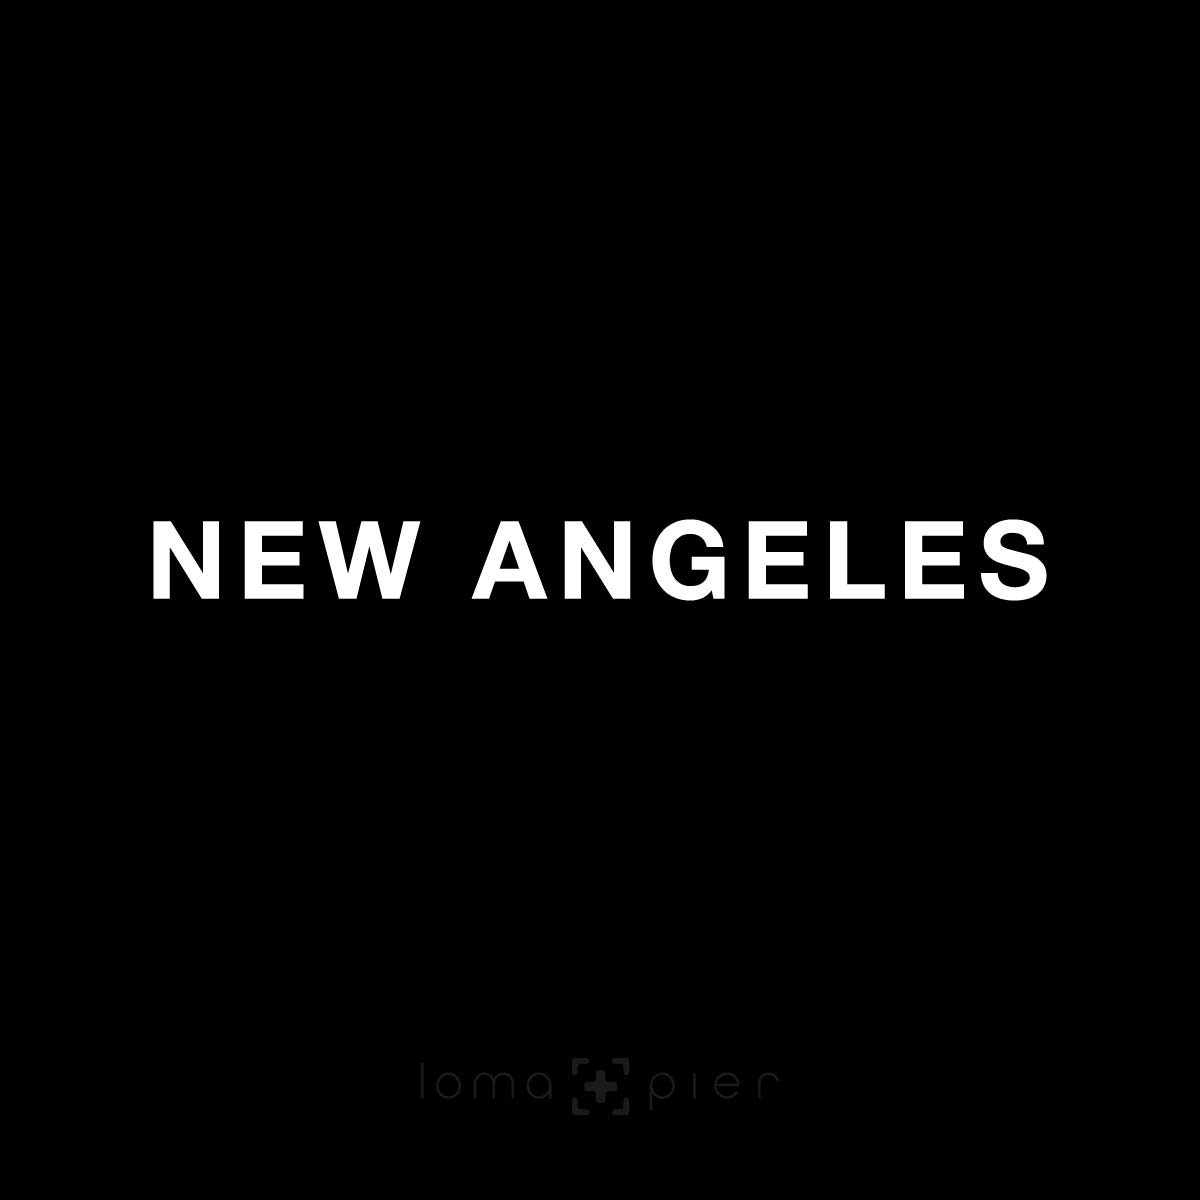 NEW ANGELES typography design by loma+pier hat store